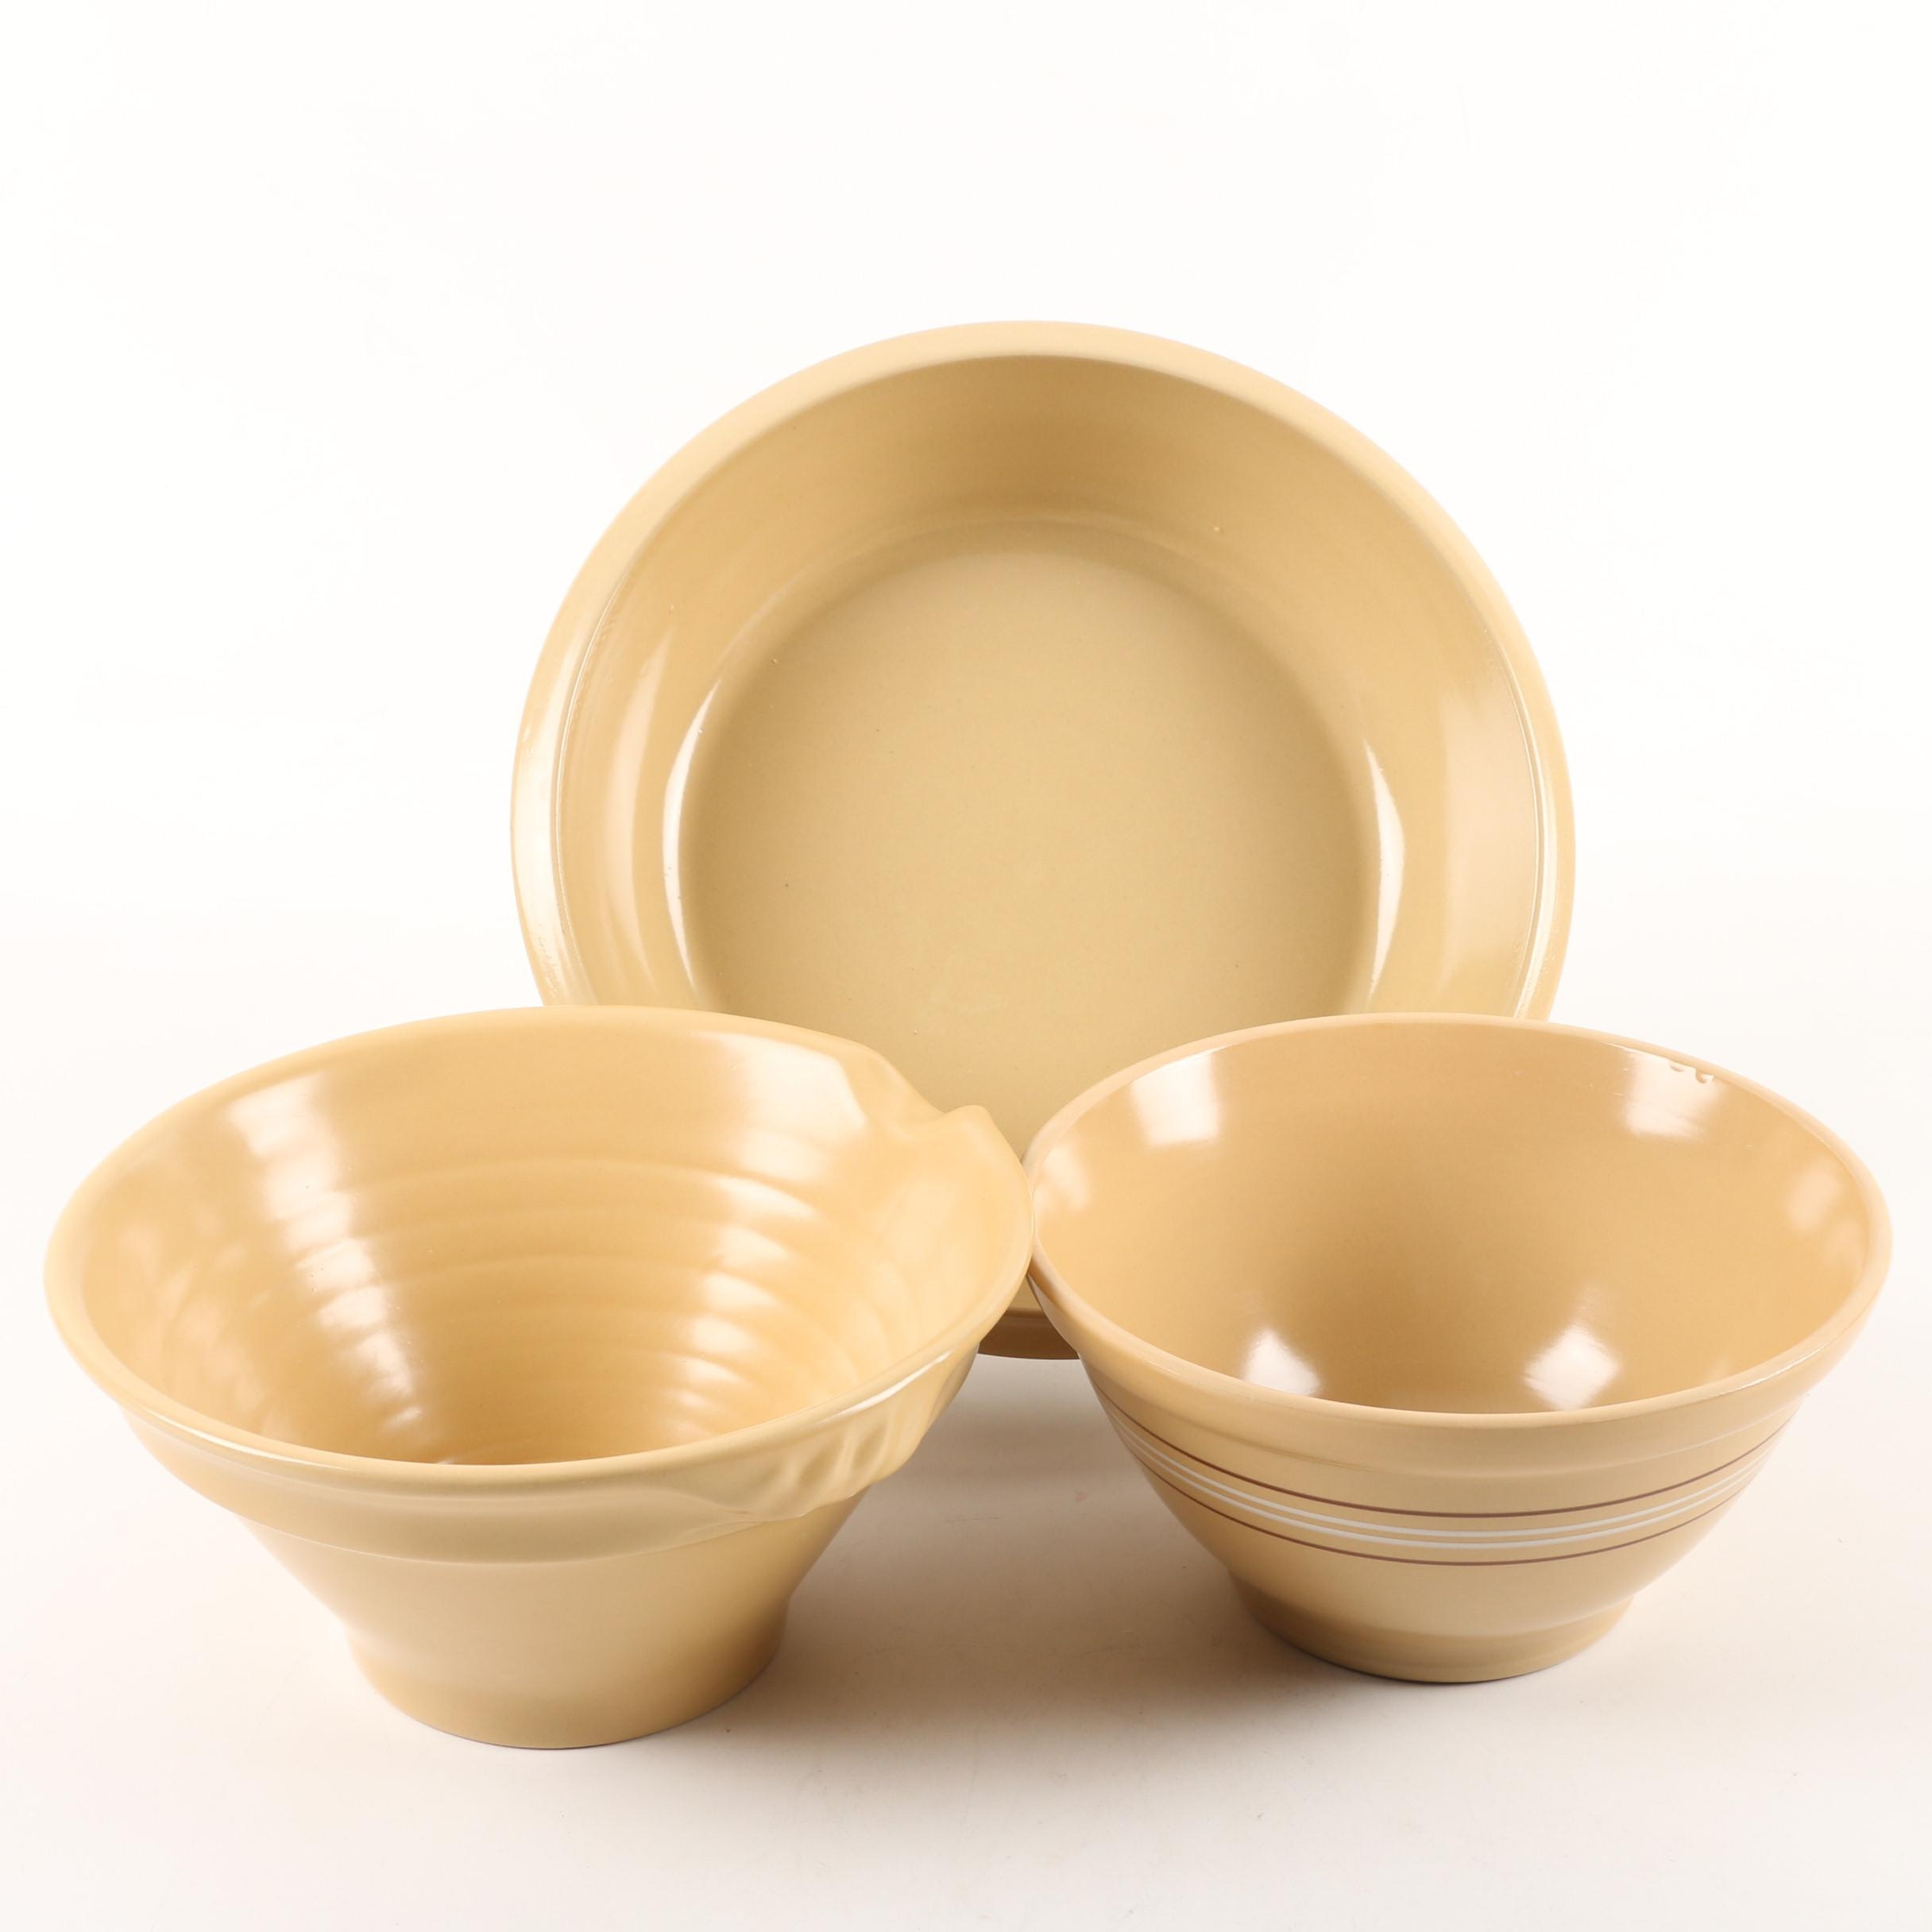 Vintage Over and Back Yellow Ware Earthenware Mixing Bowls